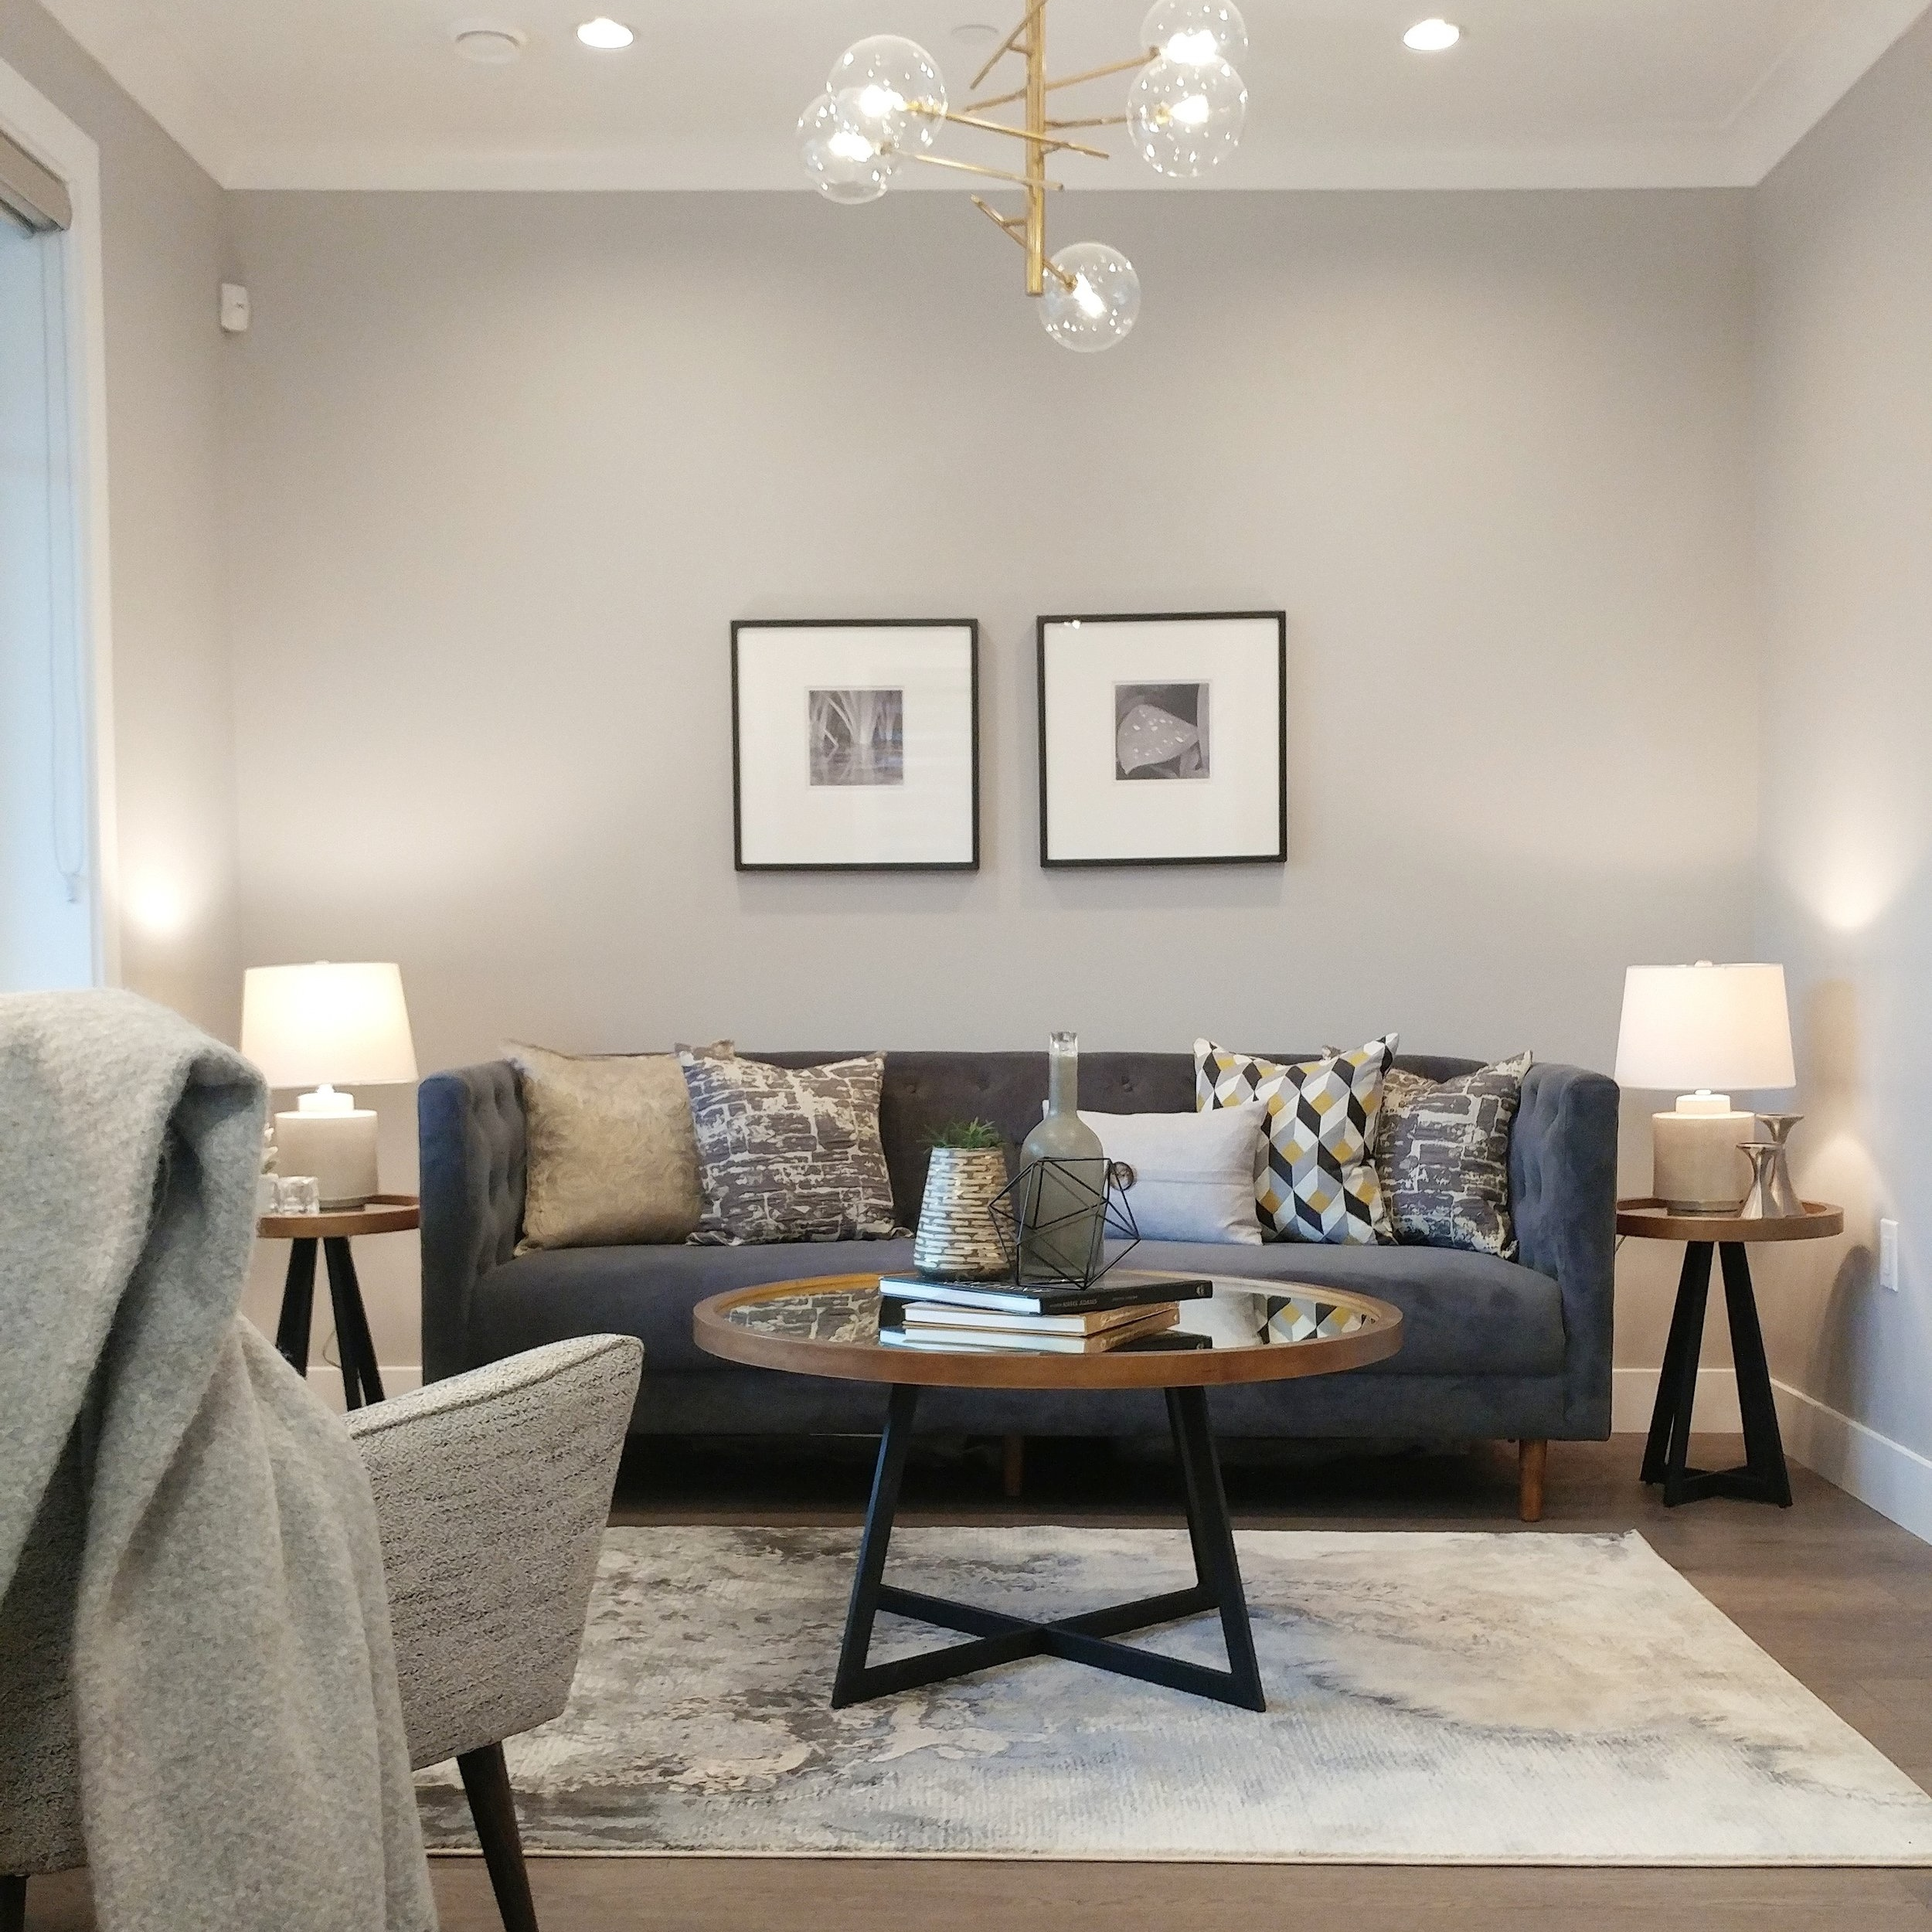 HOME STAGING - Since 2006 our talented Staging Team has worked with thousands of homeowners in Vancouver and the Lower Mainland to prepare their properties for sale in order to achieve the greatest return on investment. Let us help you create a look that sells!